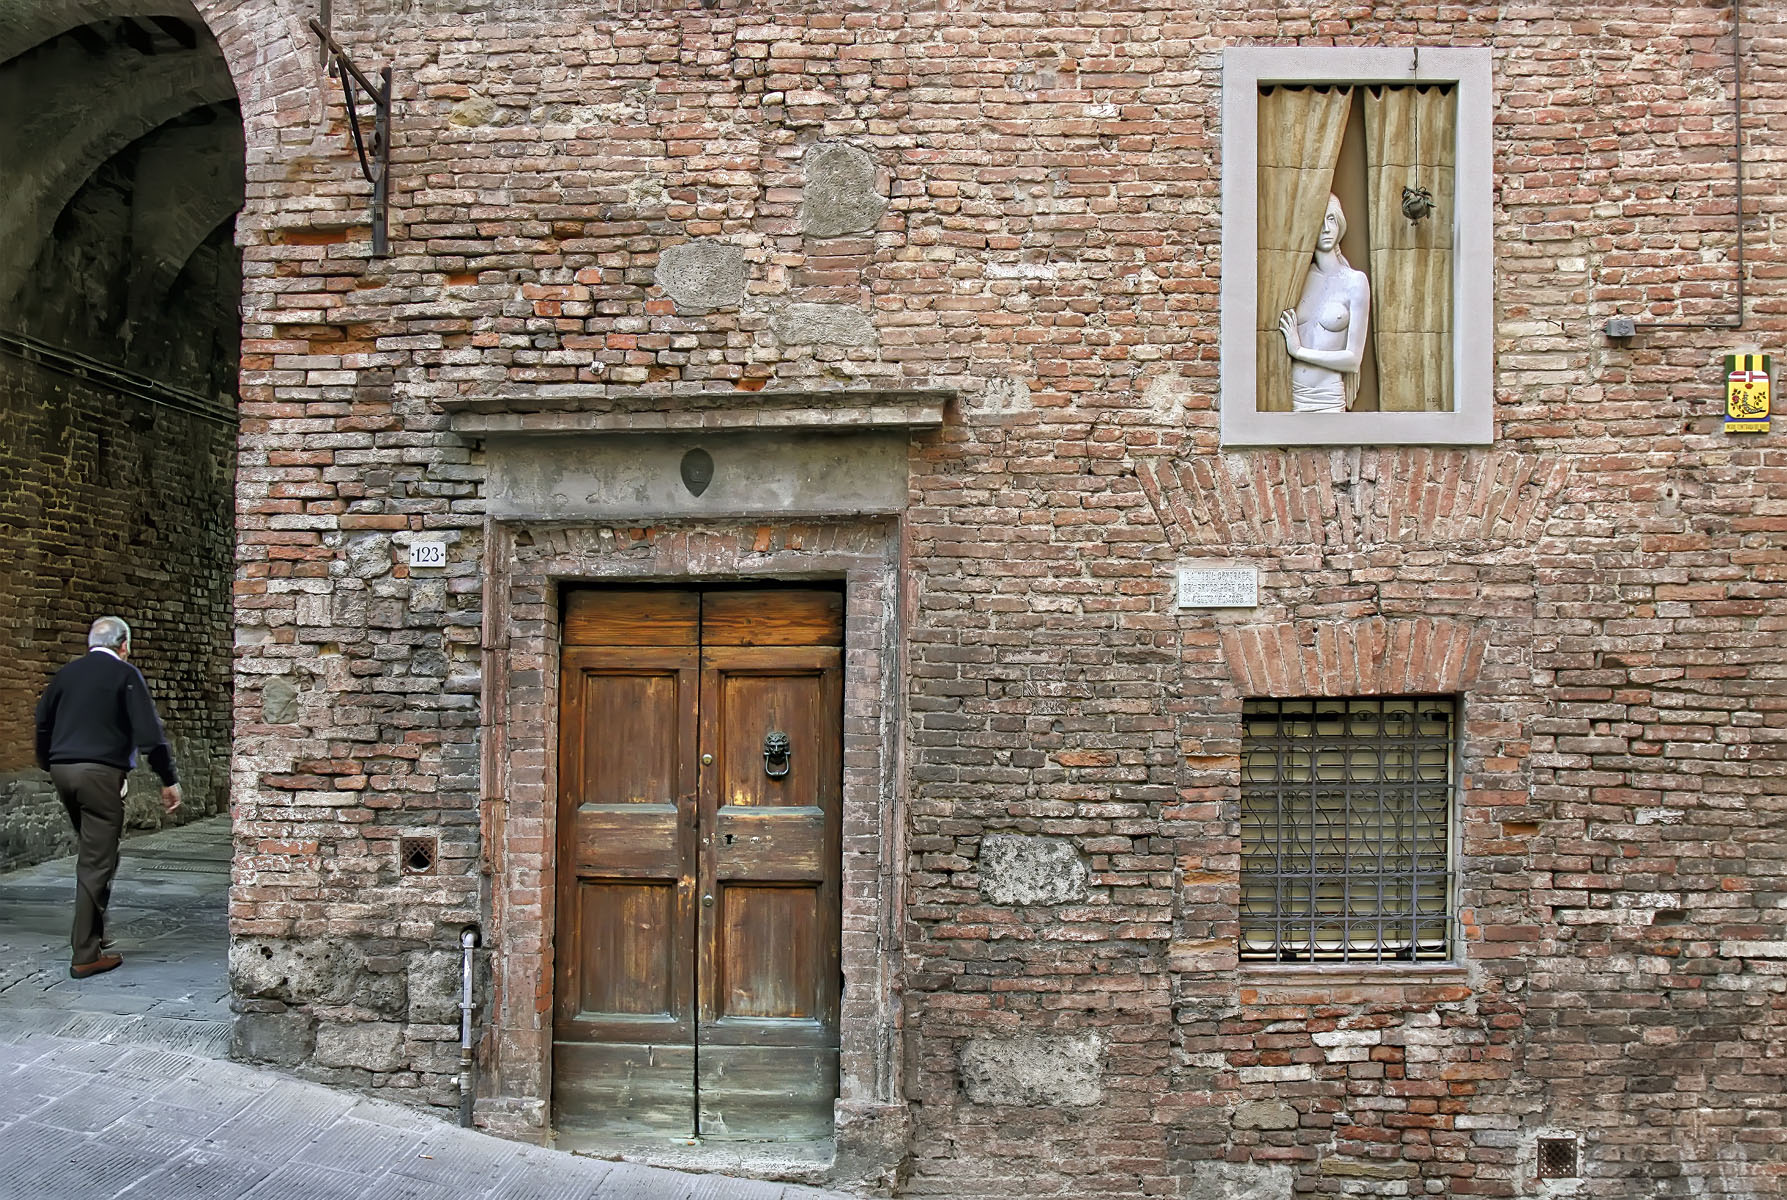 """Sienna, Italy, April 2011   Archival pigment print  11.25"""" x 16.75""""  $300  Click image to enlarge   Inquire."""